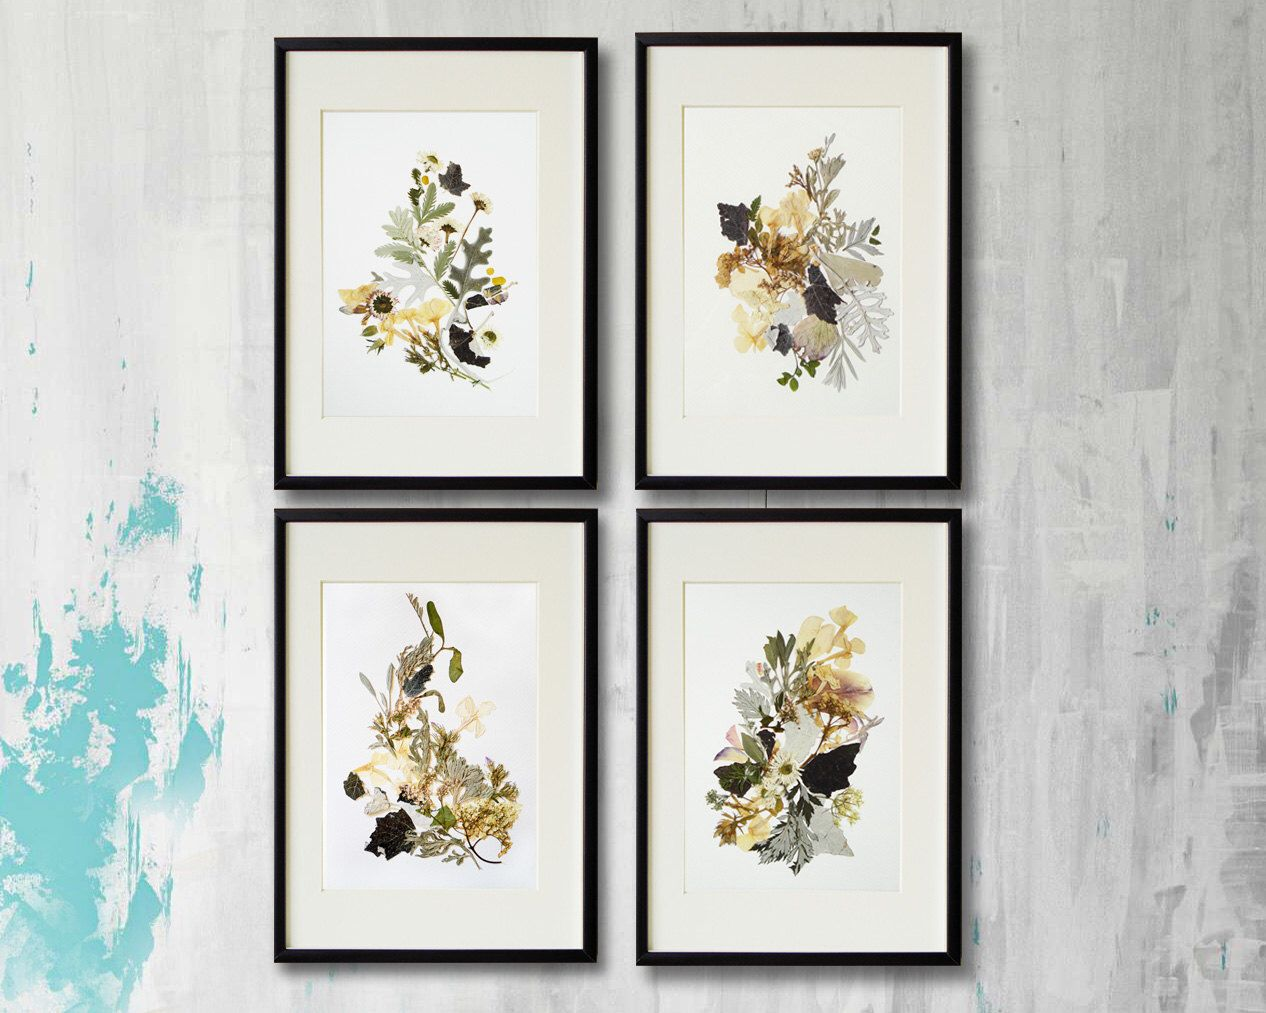 Pin by Fly Away on Method | Pinterest | Plant art, Walls and Flower